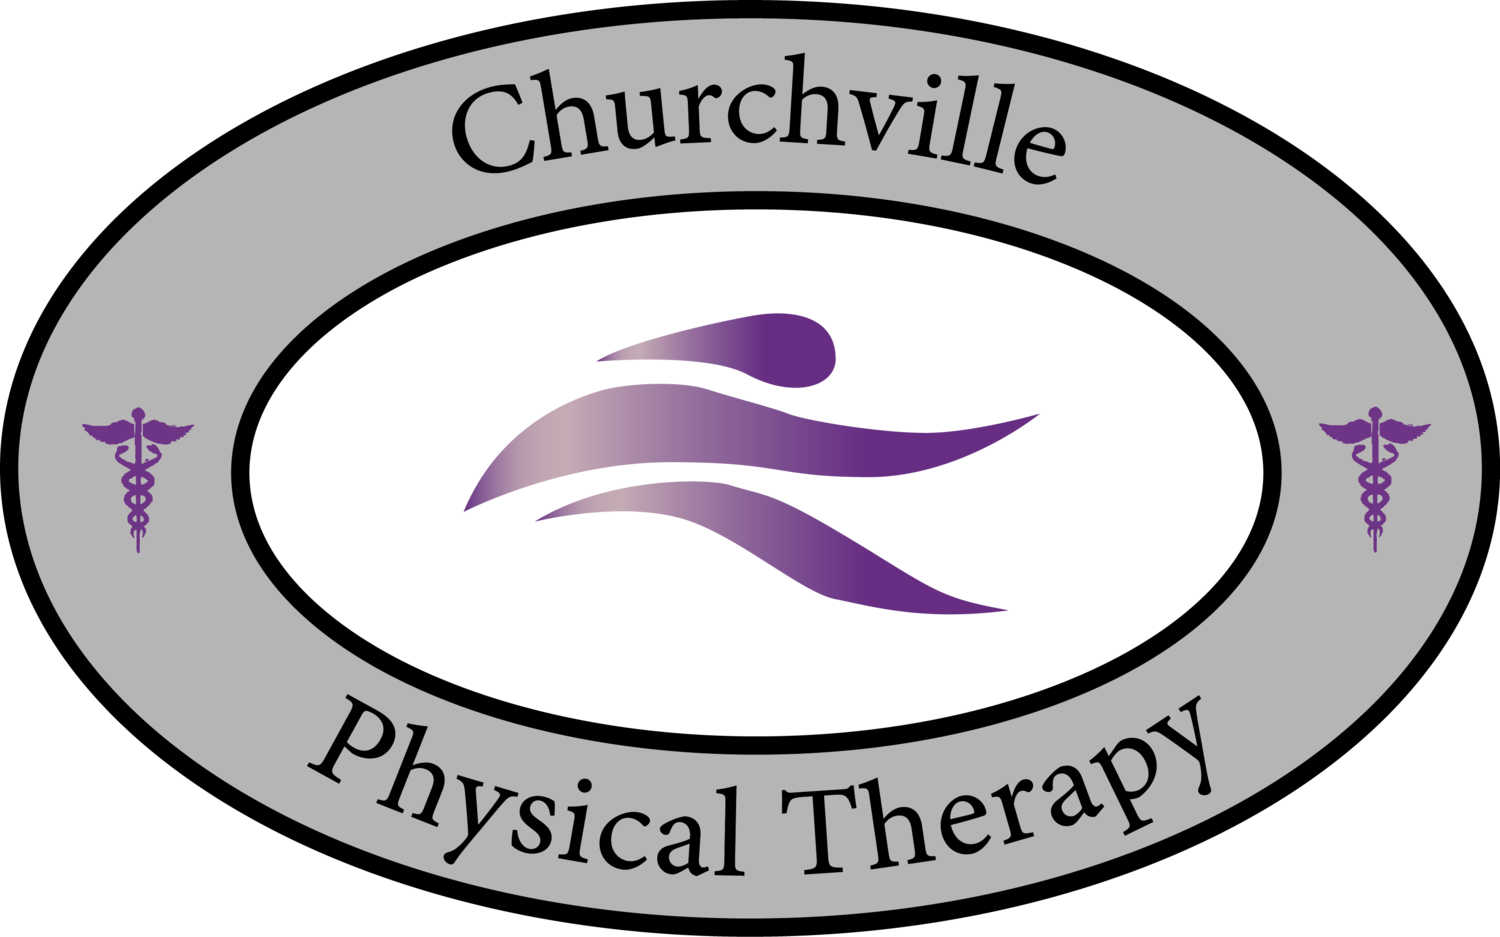 Churchville Physical Therapy